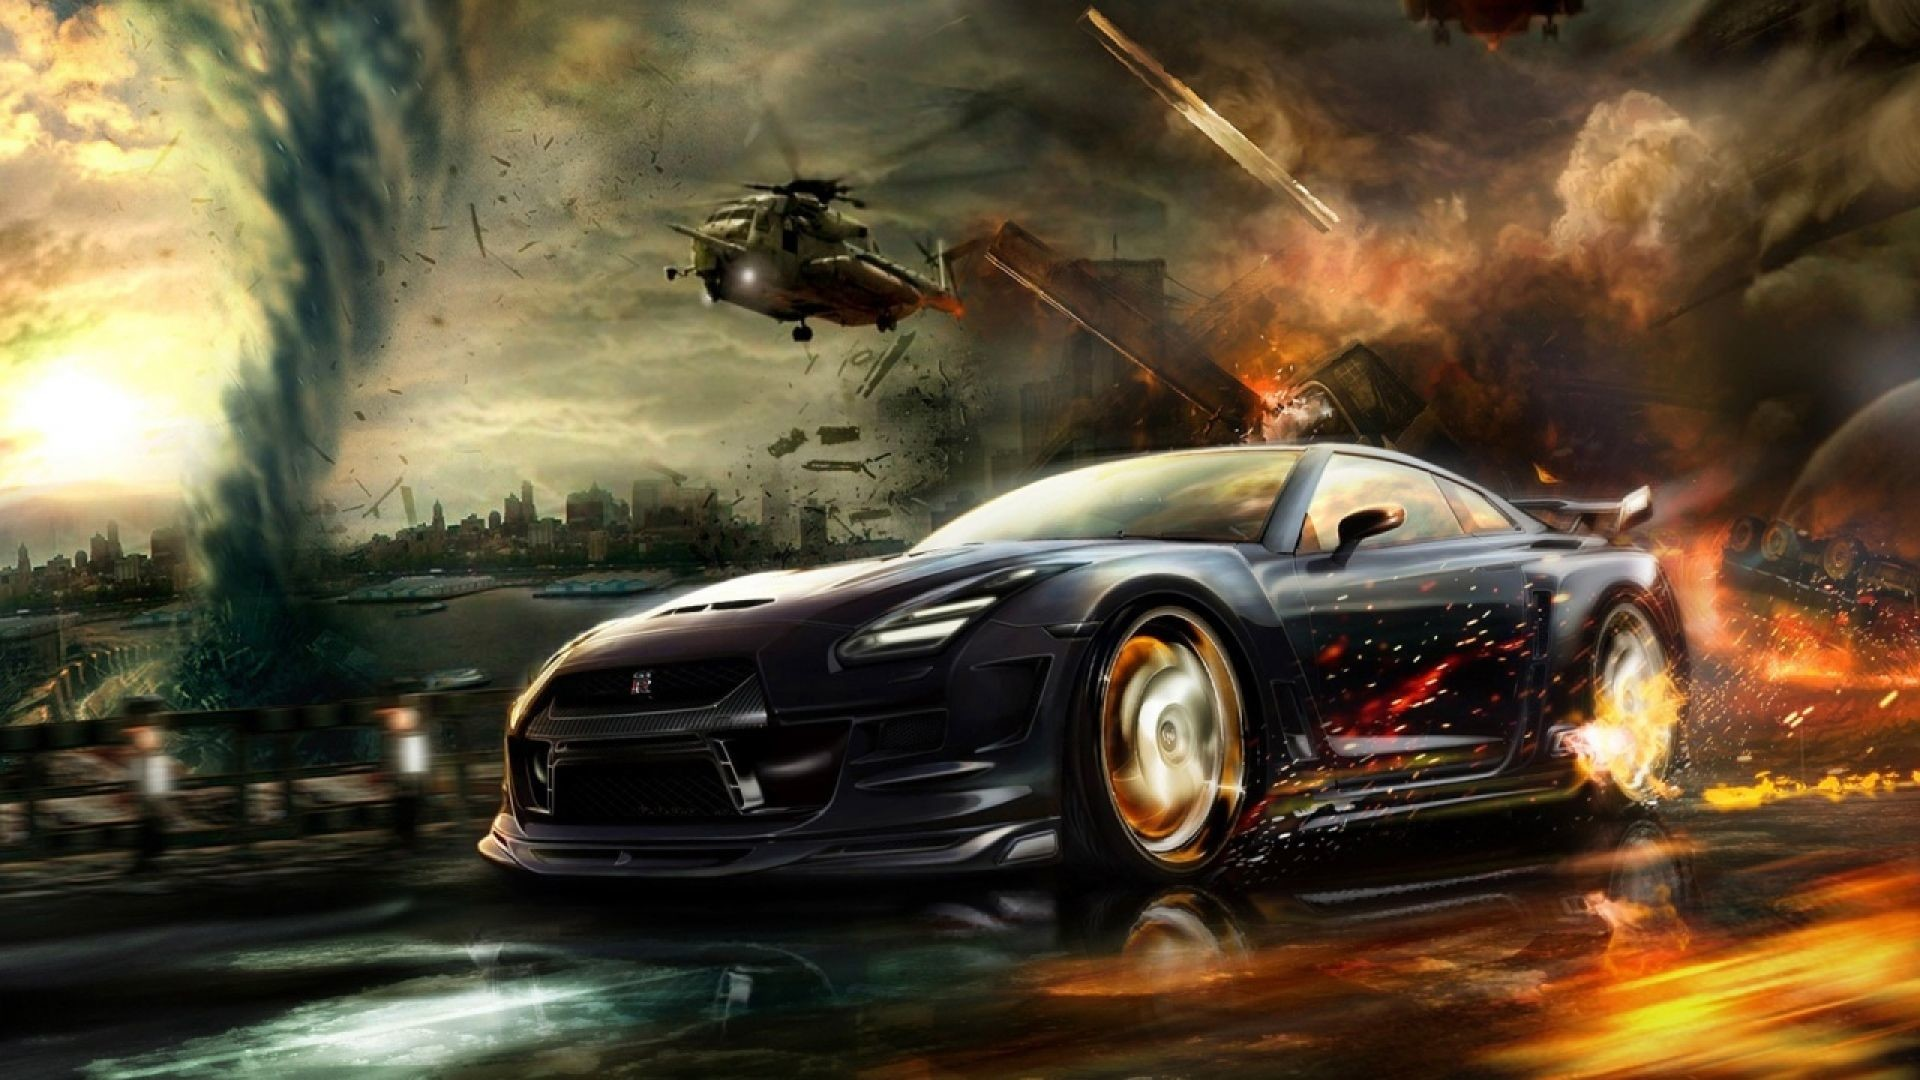 1920x1080 Fantasy Racing Car With Fire on Wheel | HD Other Cars Wallpaper Free  Download ...